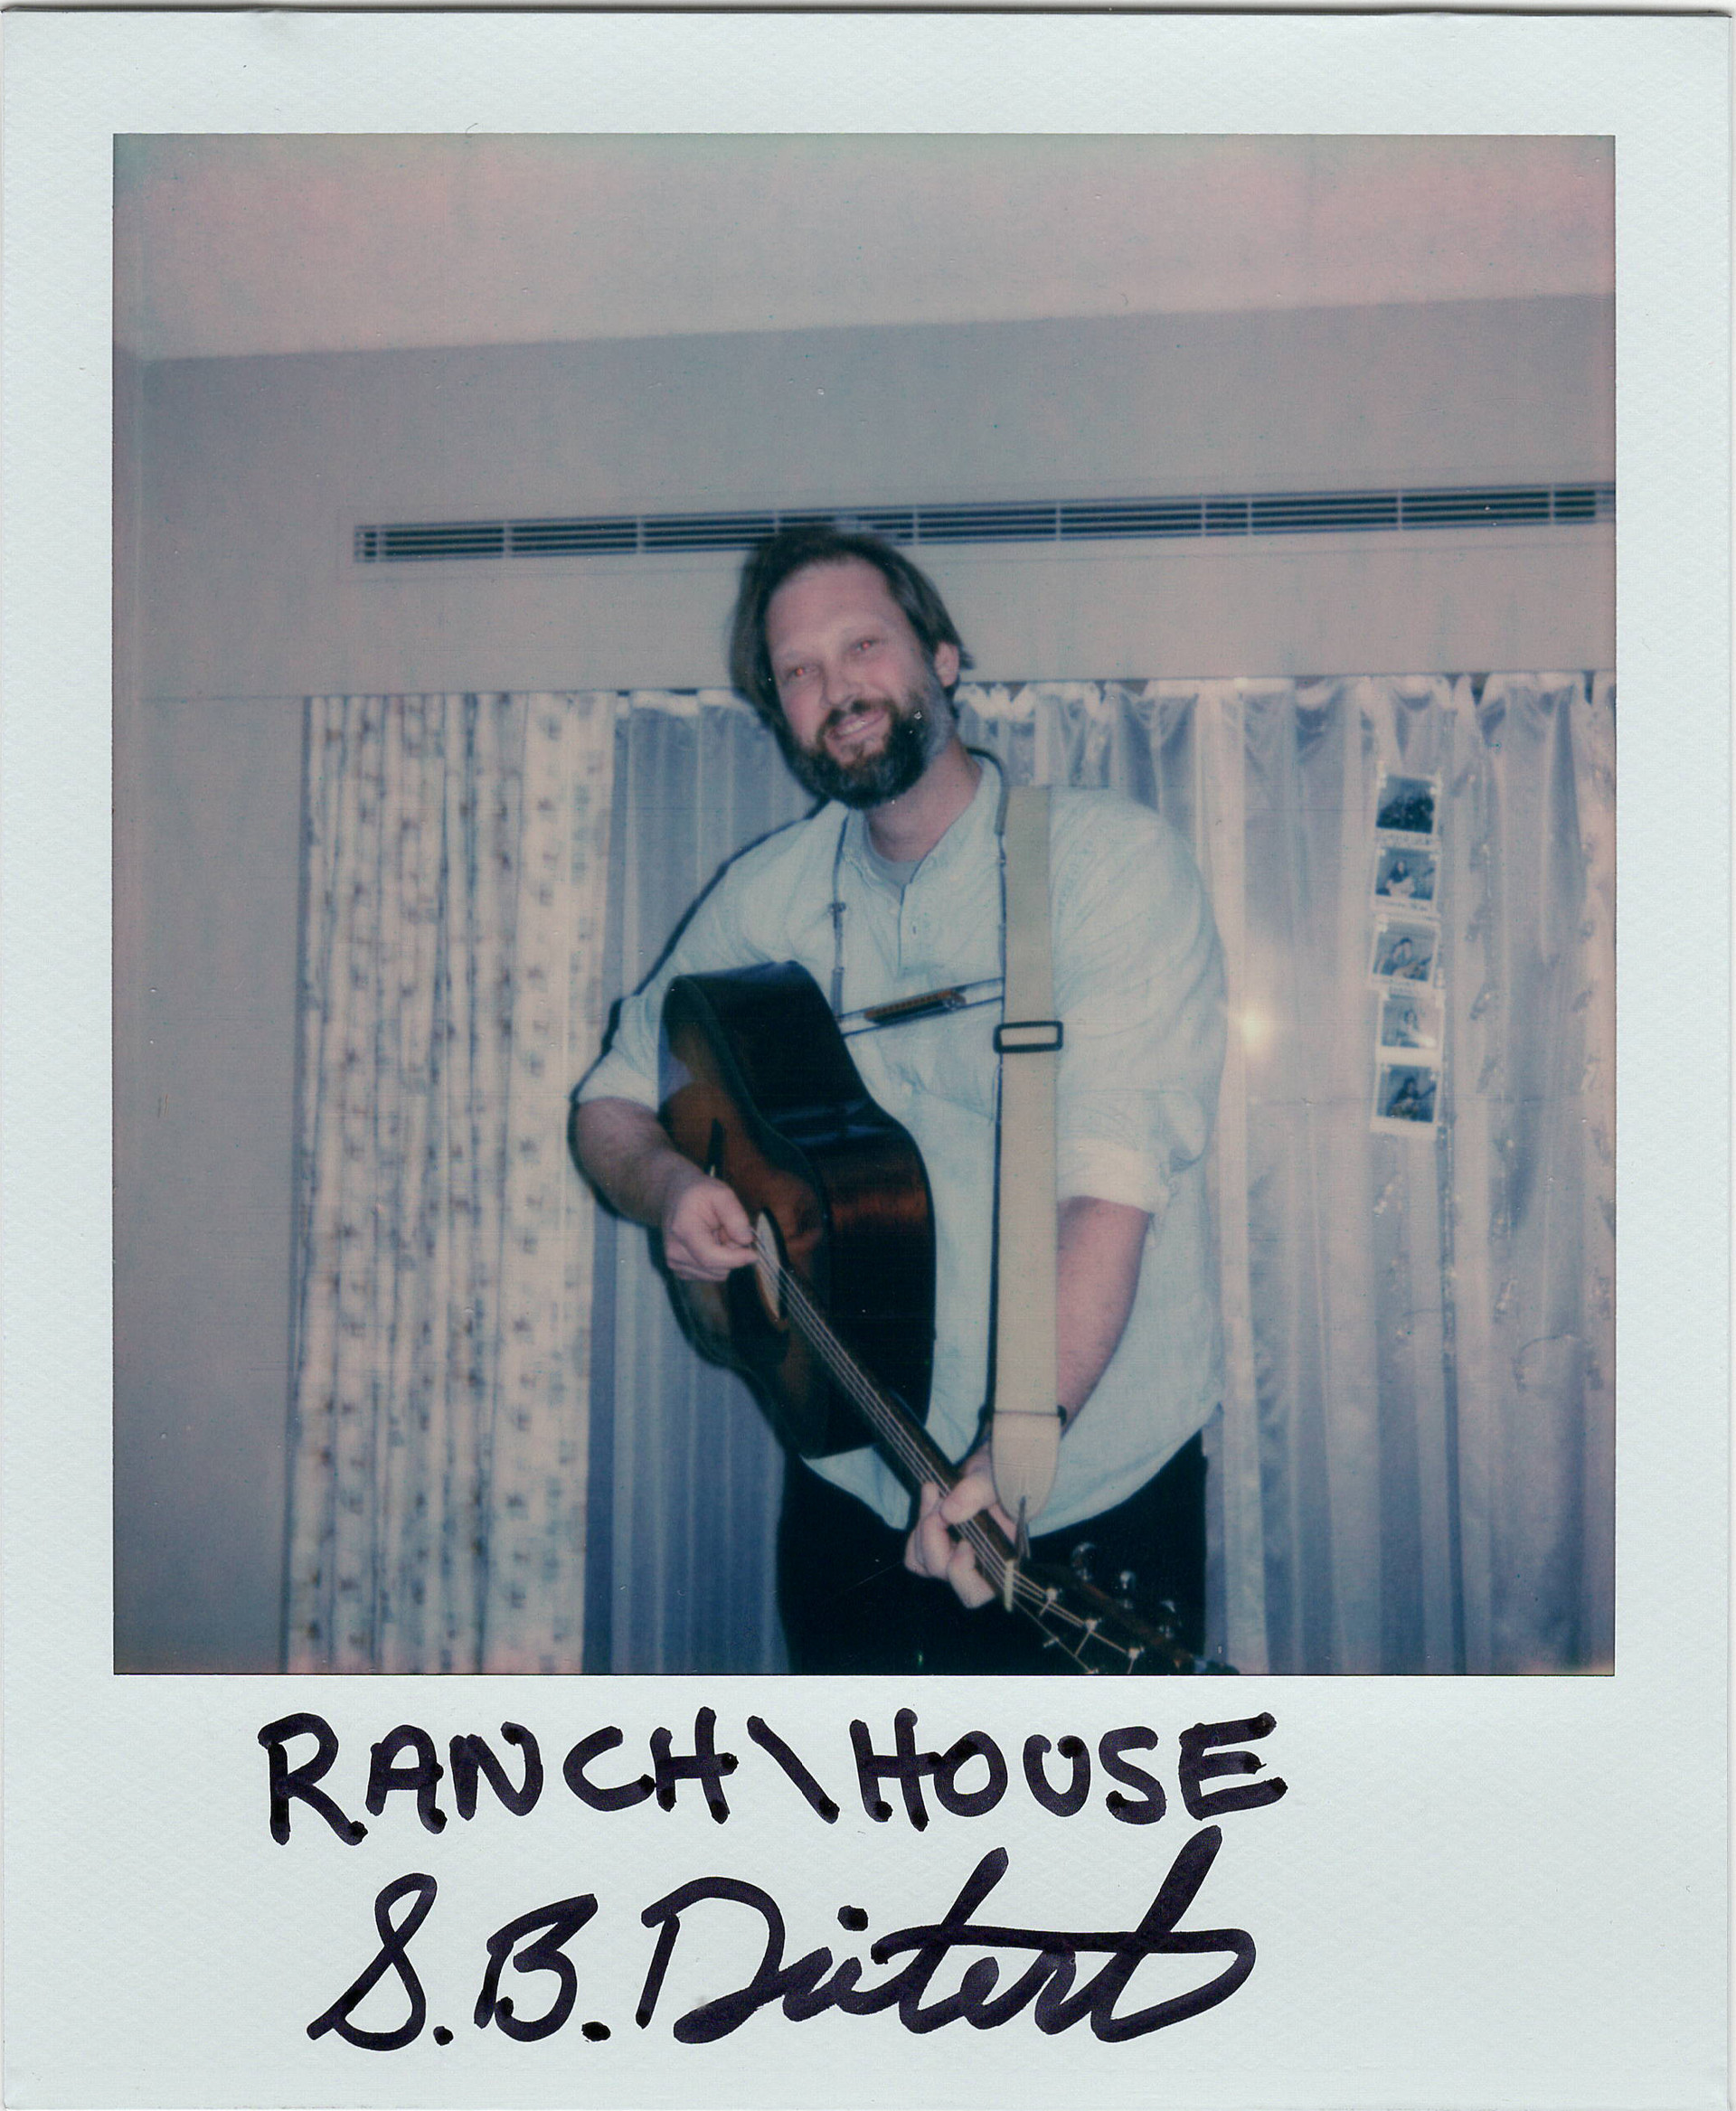 RANCH\HOUSE